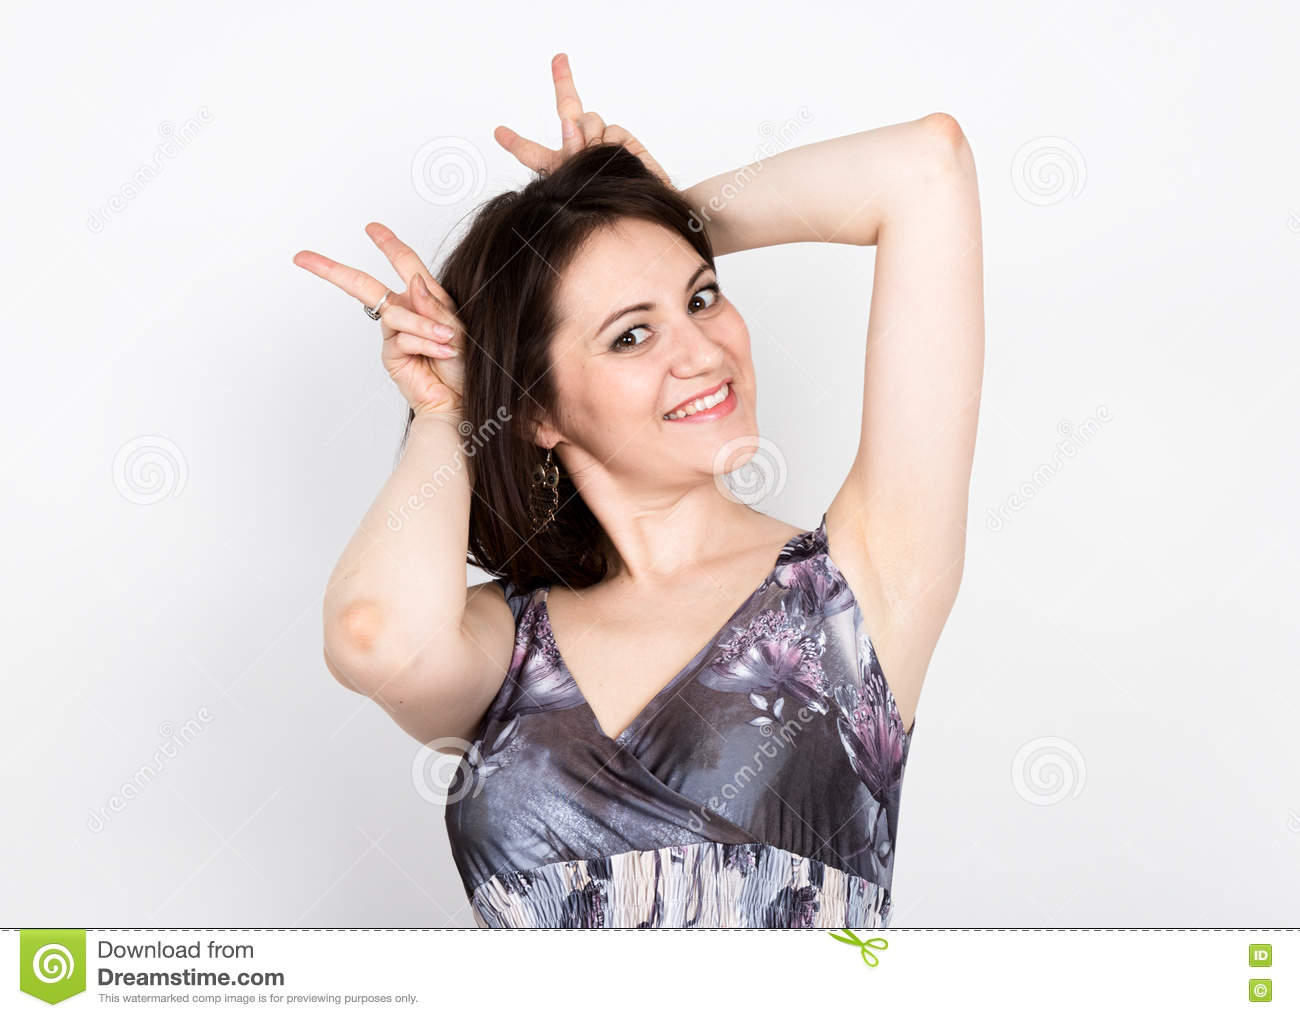 Beautiful young brunette woman in a colorful dress posing and expresses different emotions. woman s hands shows various